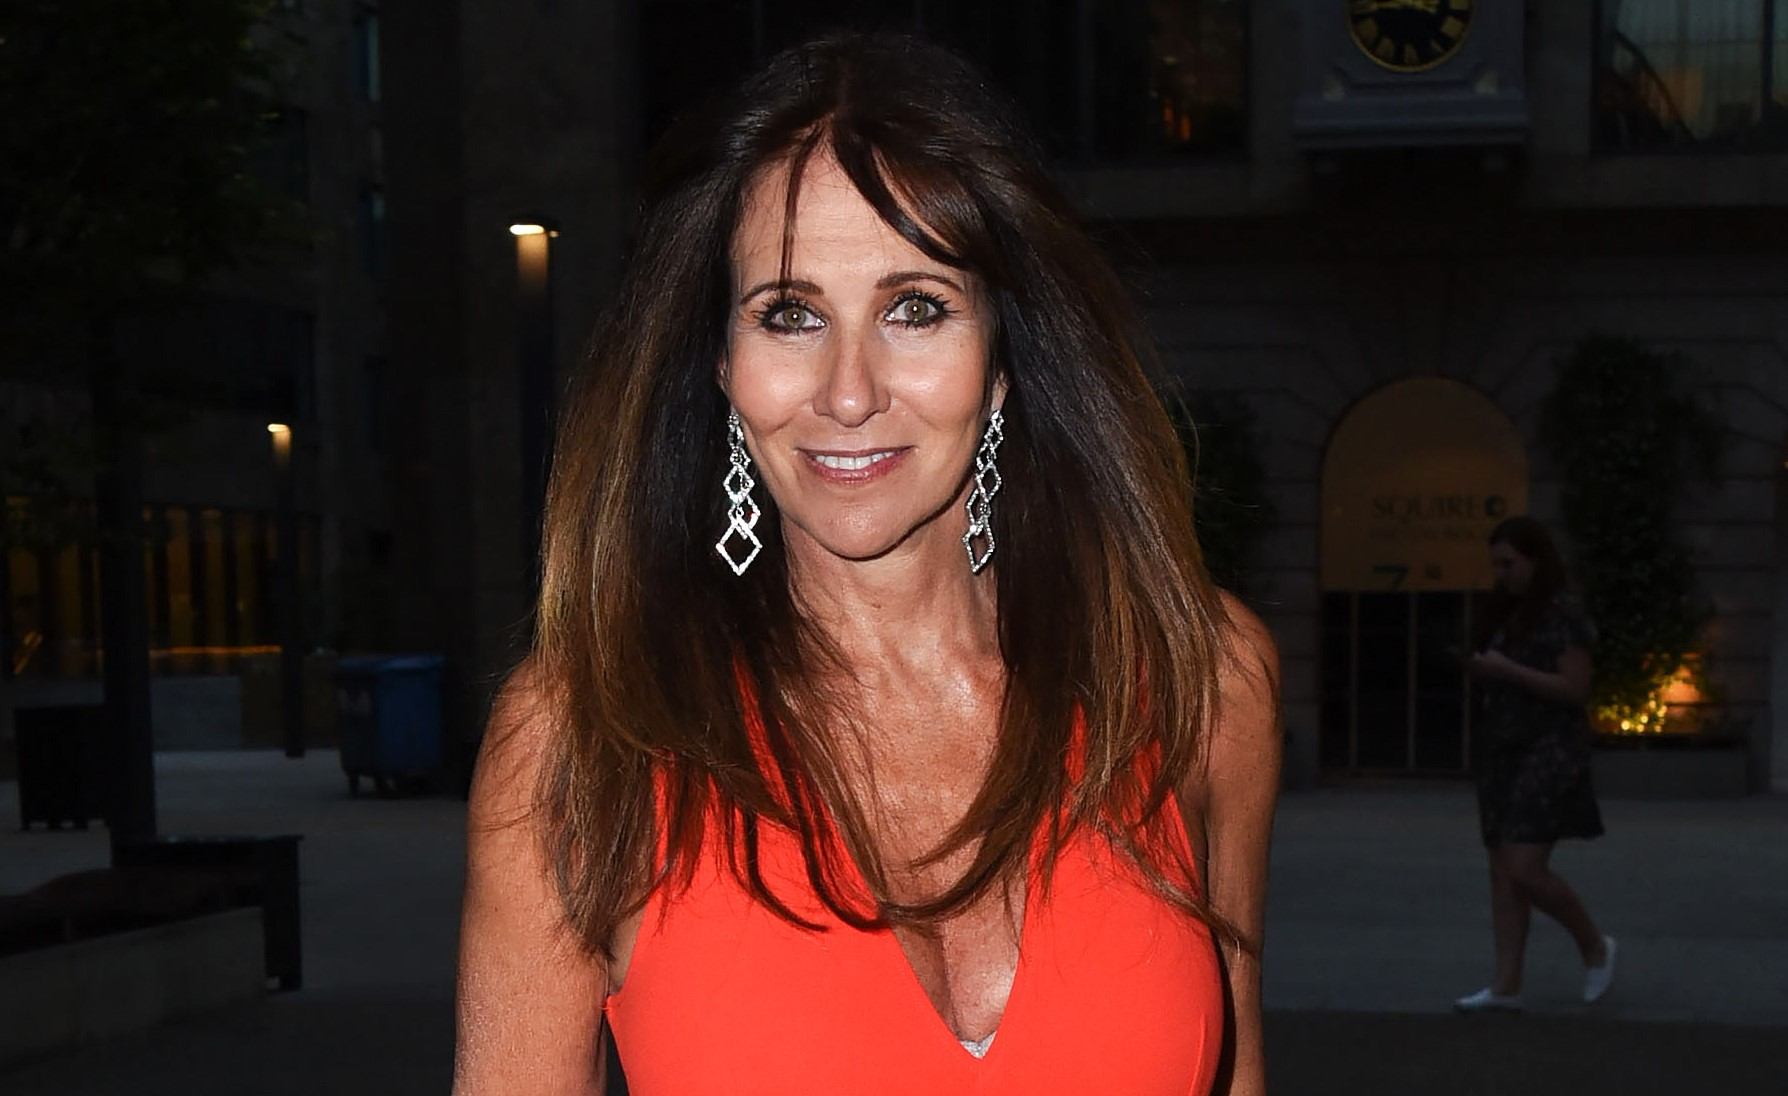 Linda Lusardi believes coronavirus could be 'man made' as her vomit was BLUE